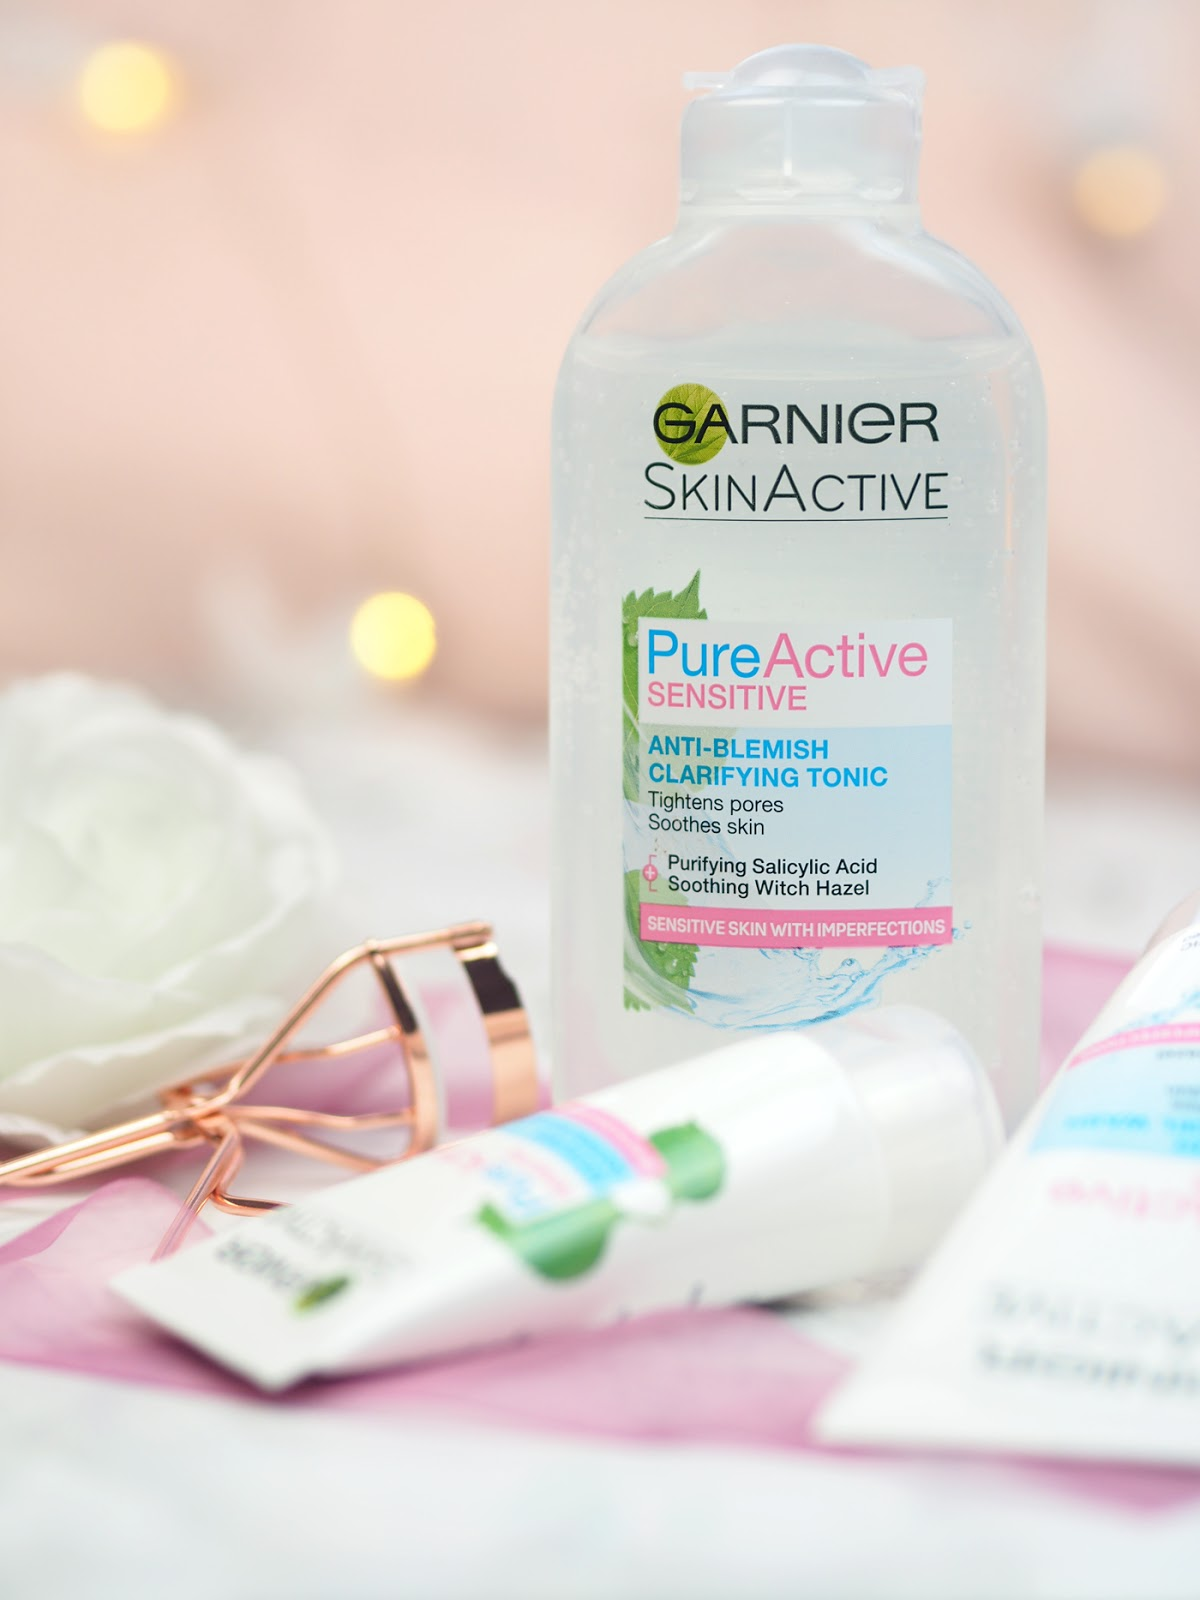 Garnier PureActive Sensitive Range Review